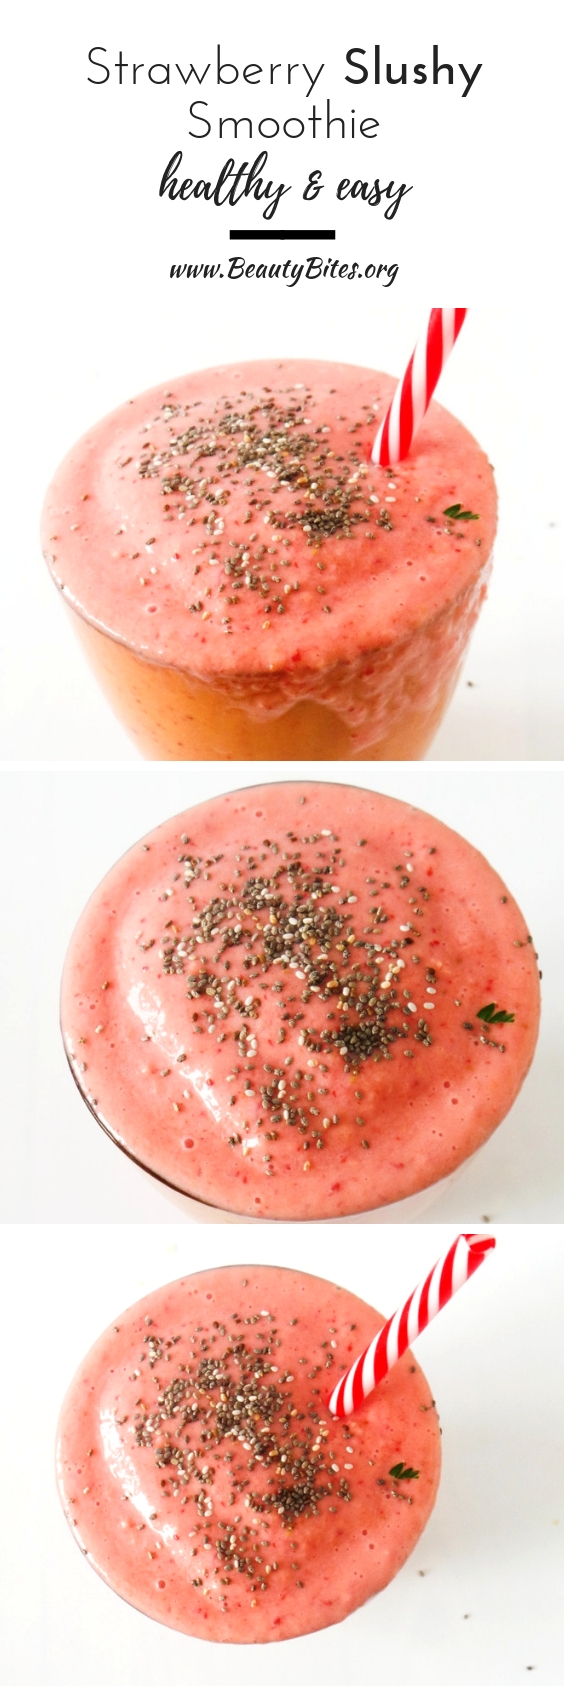 Super healthy strawberry smoothie recipe without bananas! This one is made with peaches and tastes like a strawberry shake/slushy! You need to try it - it's sweet, healthy and delicious!